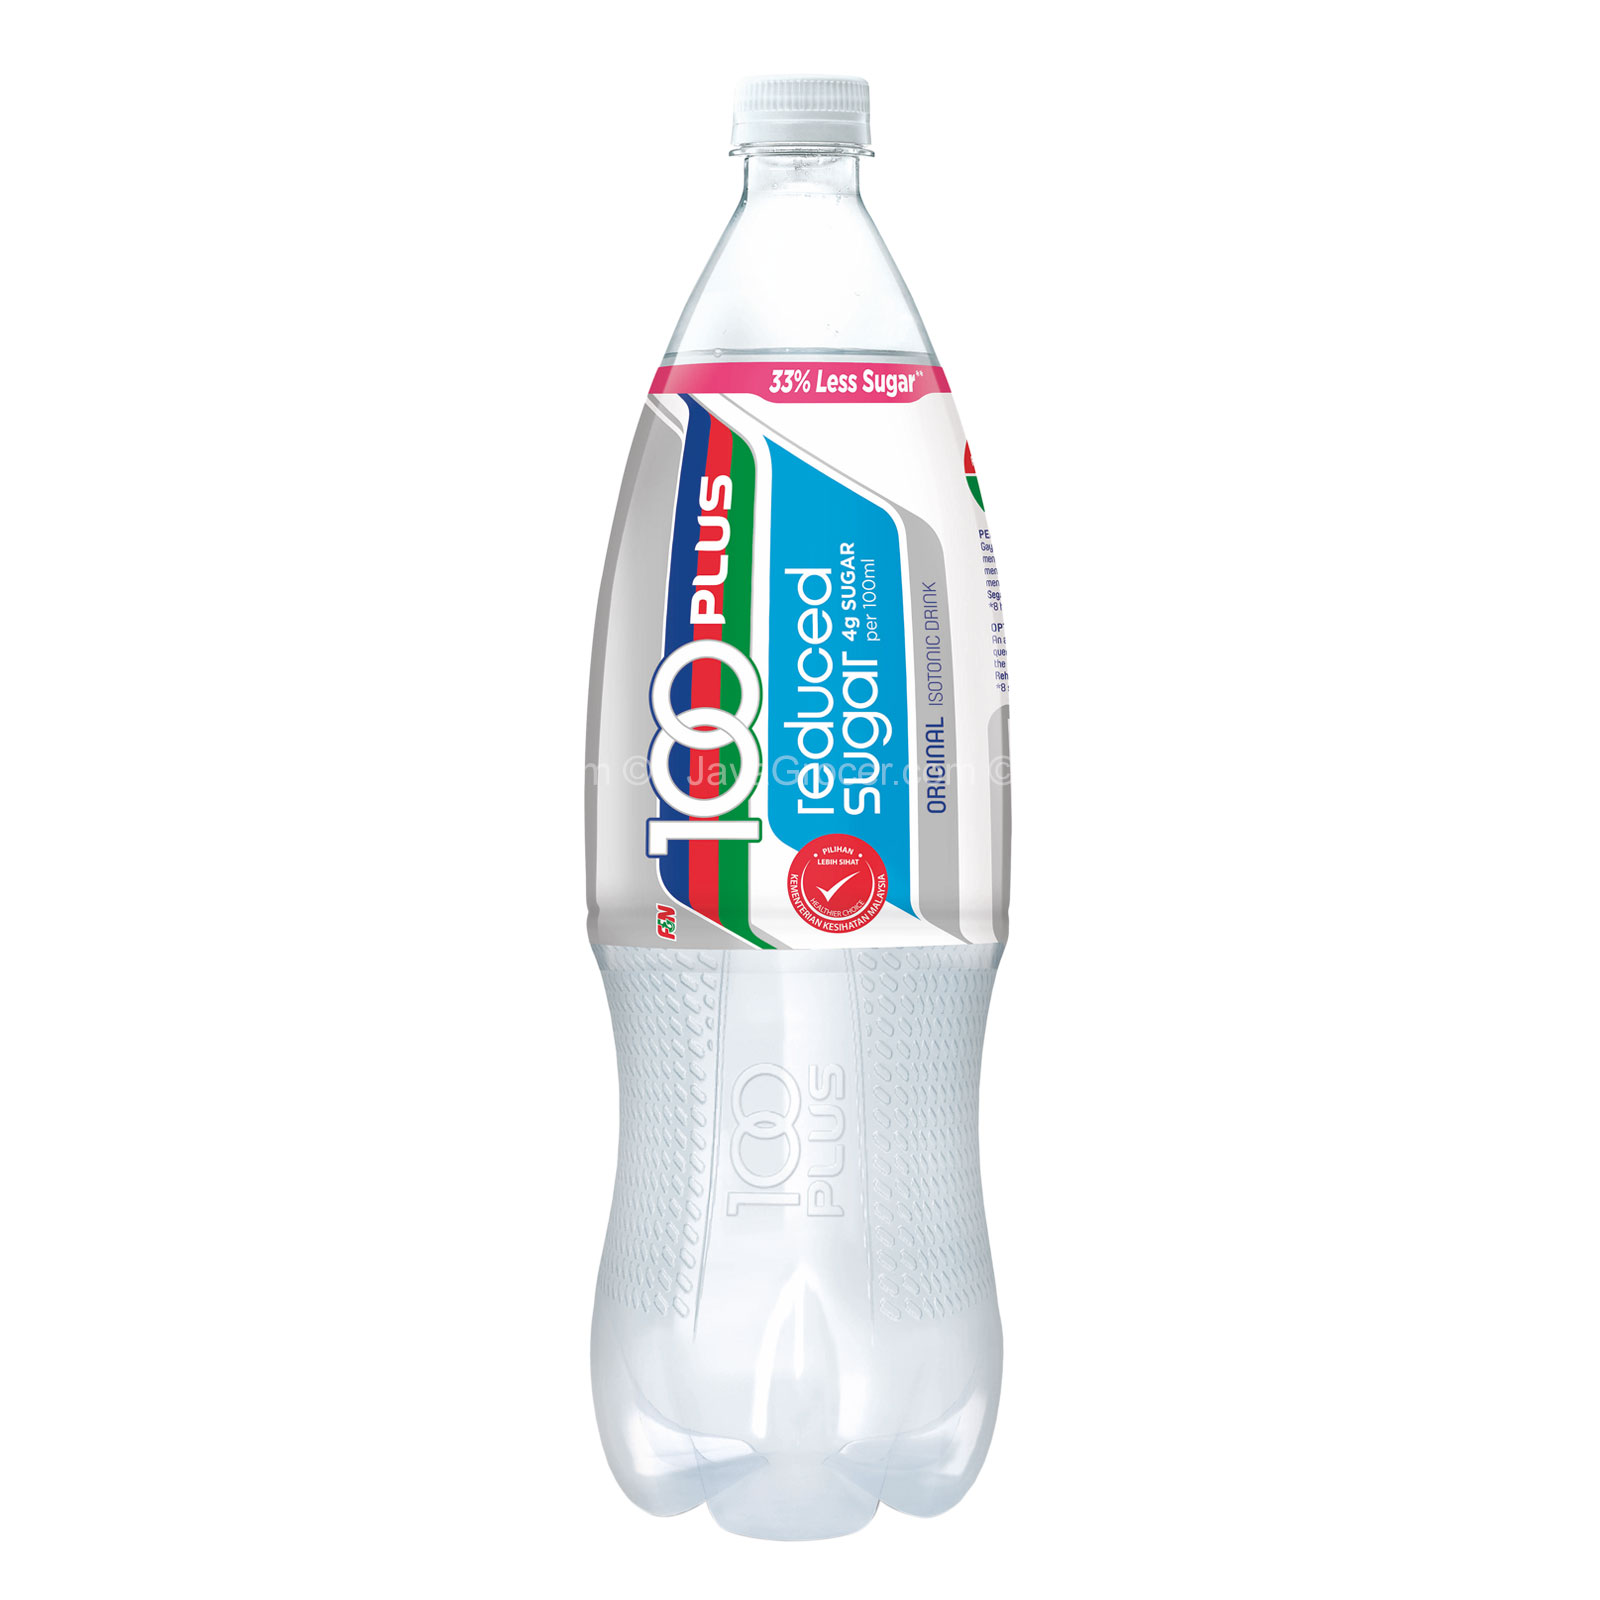 Have You Tried The New 100PLUS Drink Yet?